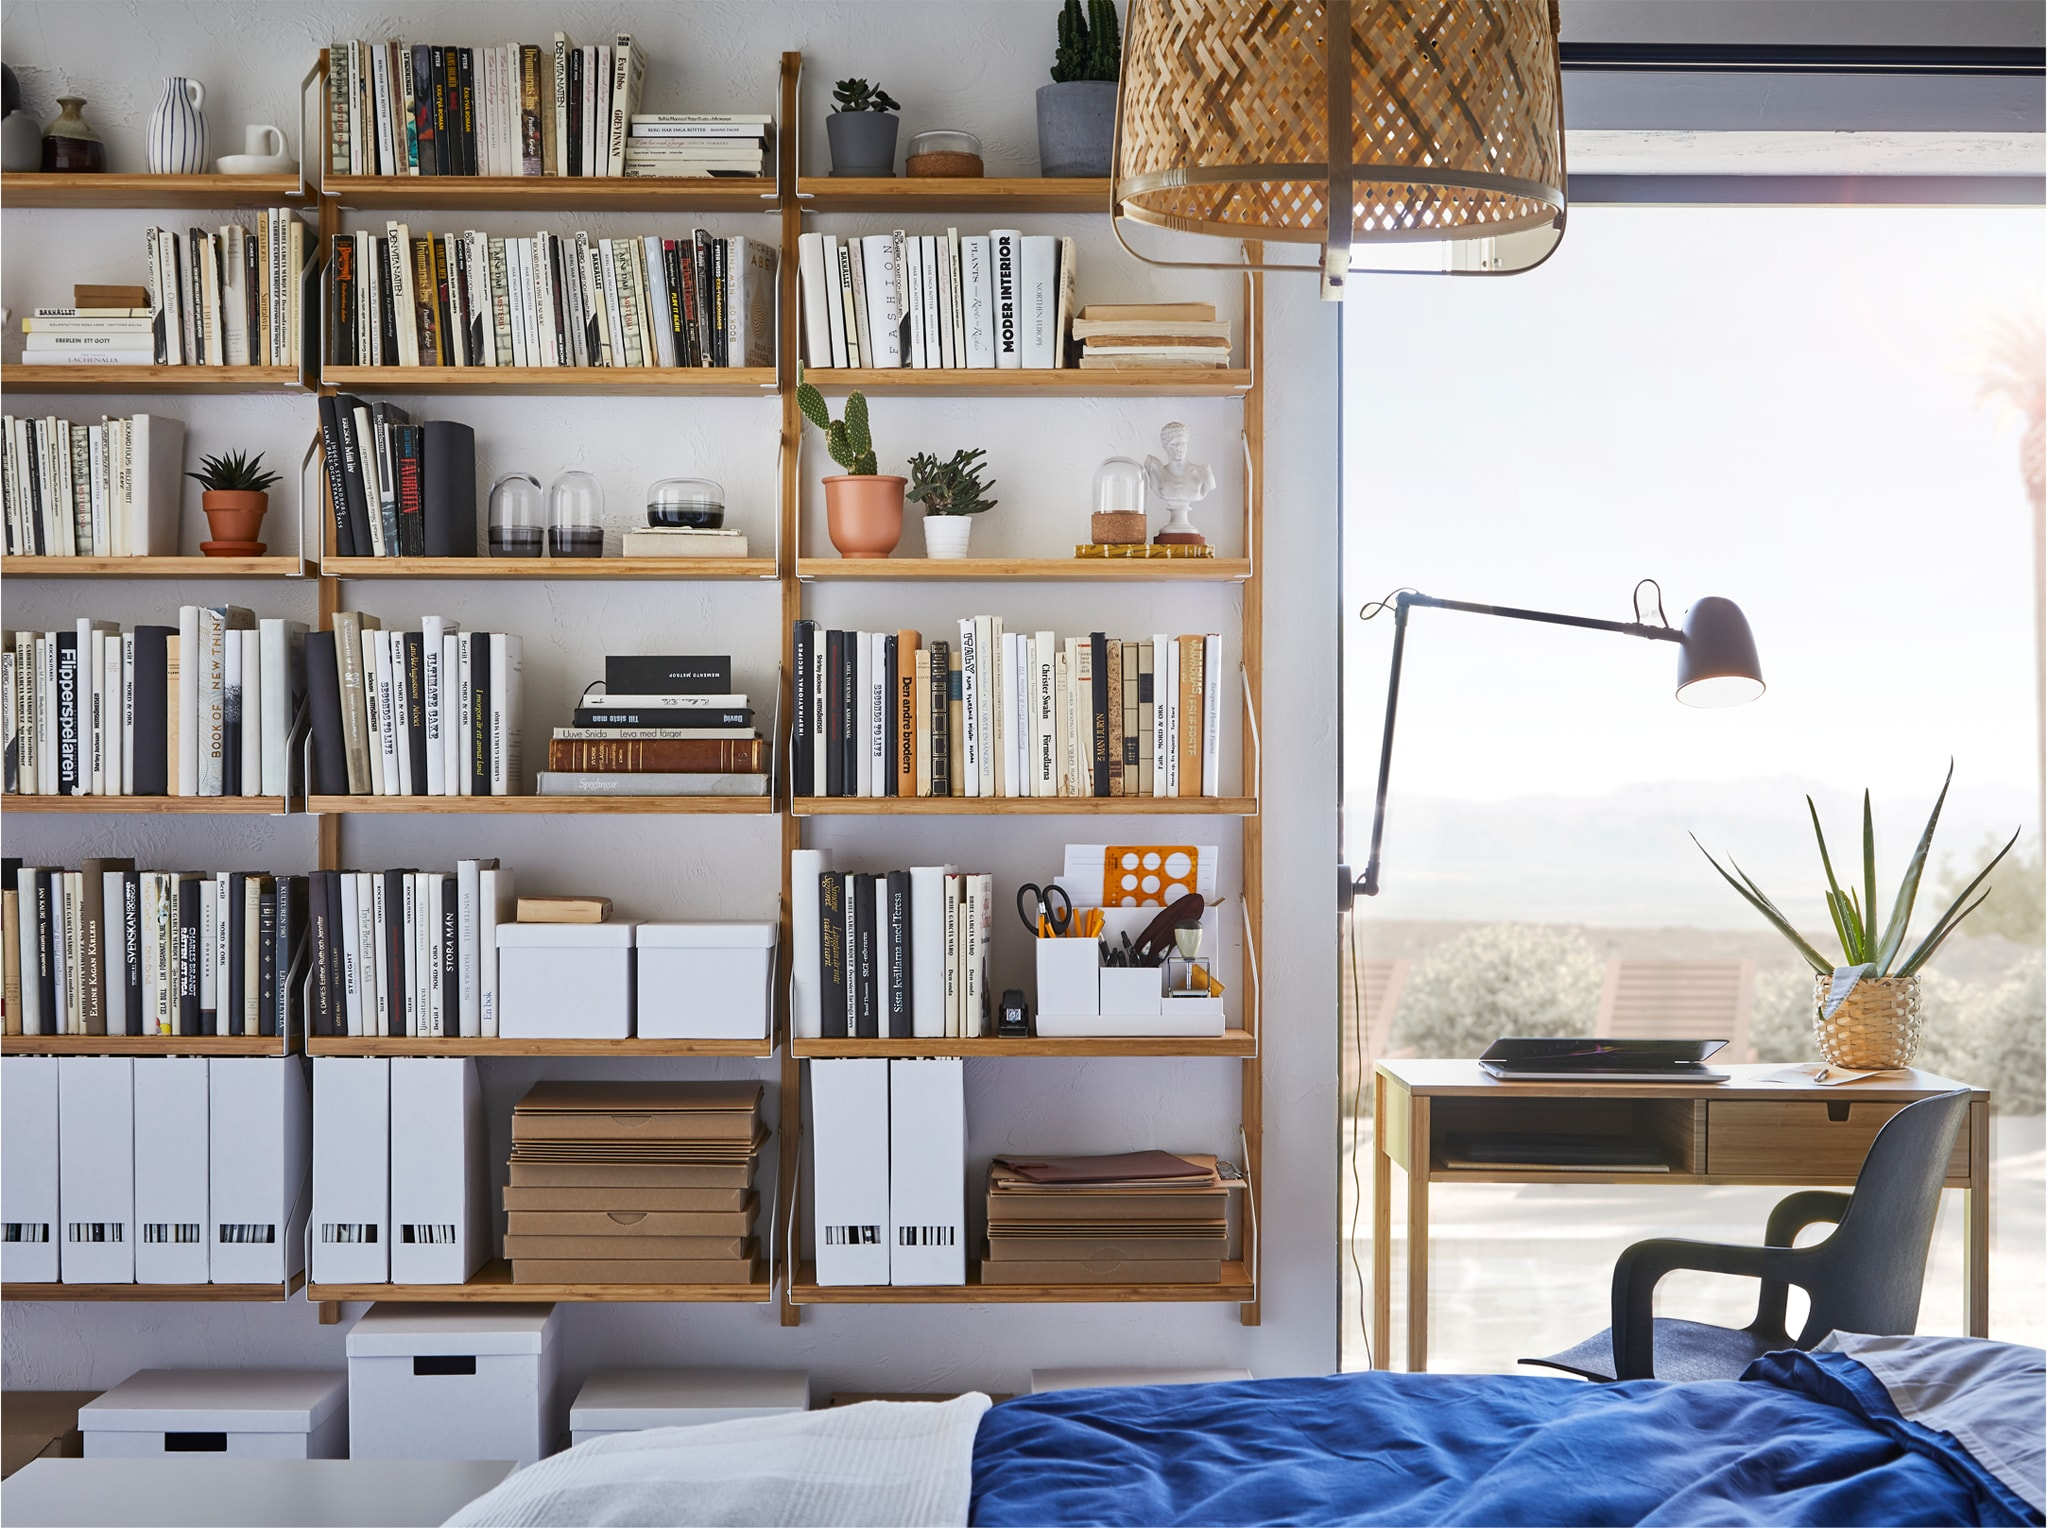 A bedroom with a large wall-mounted shelf combination in bamboo that holds lots of books, plants and decorative items.